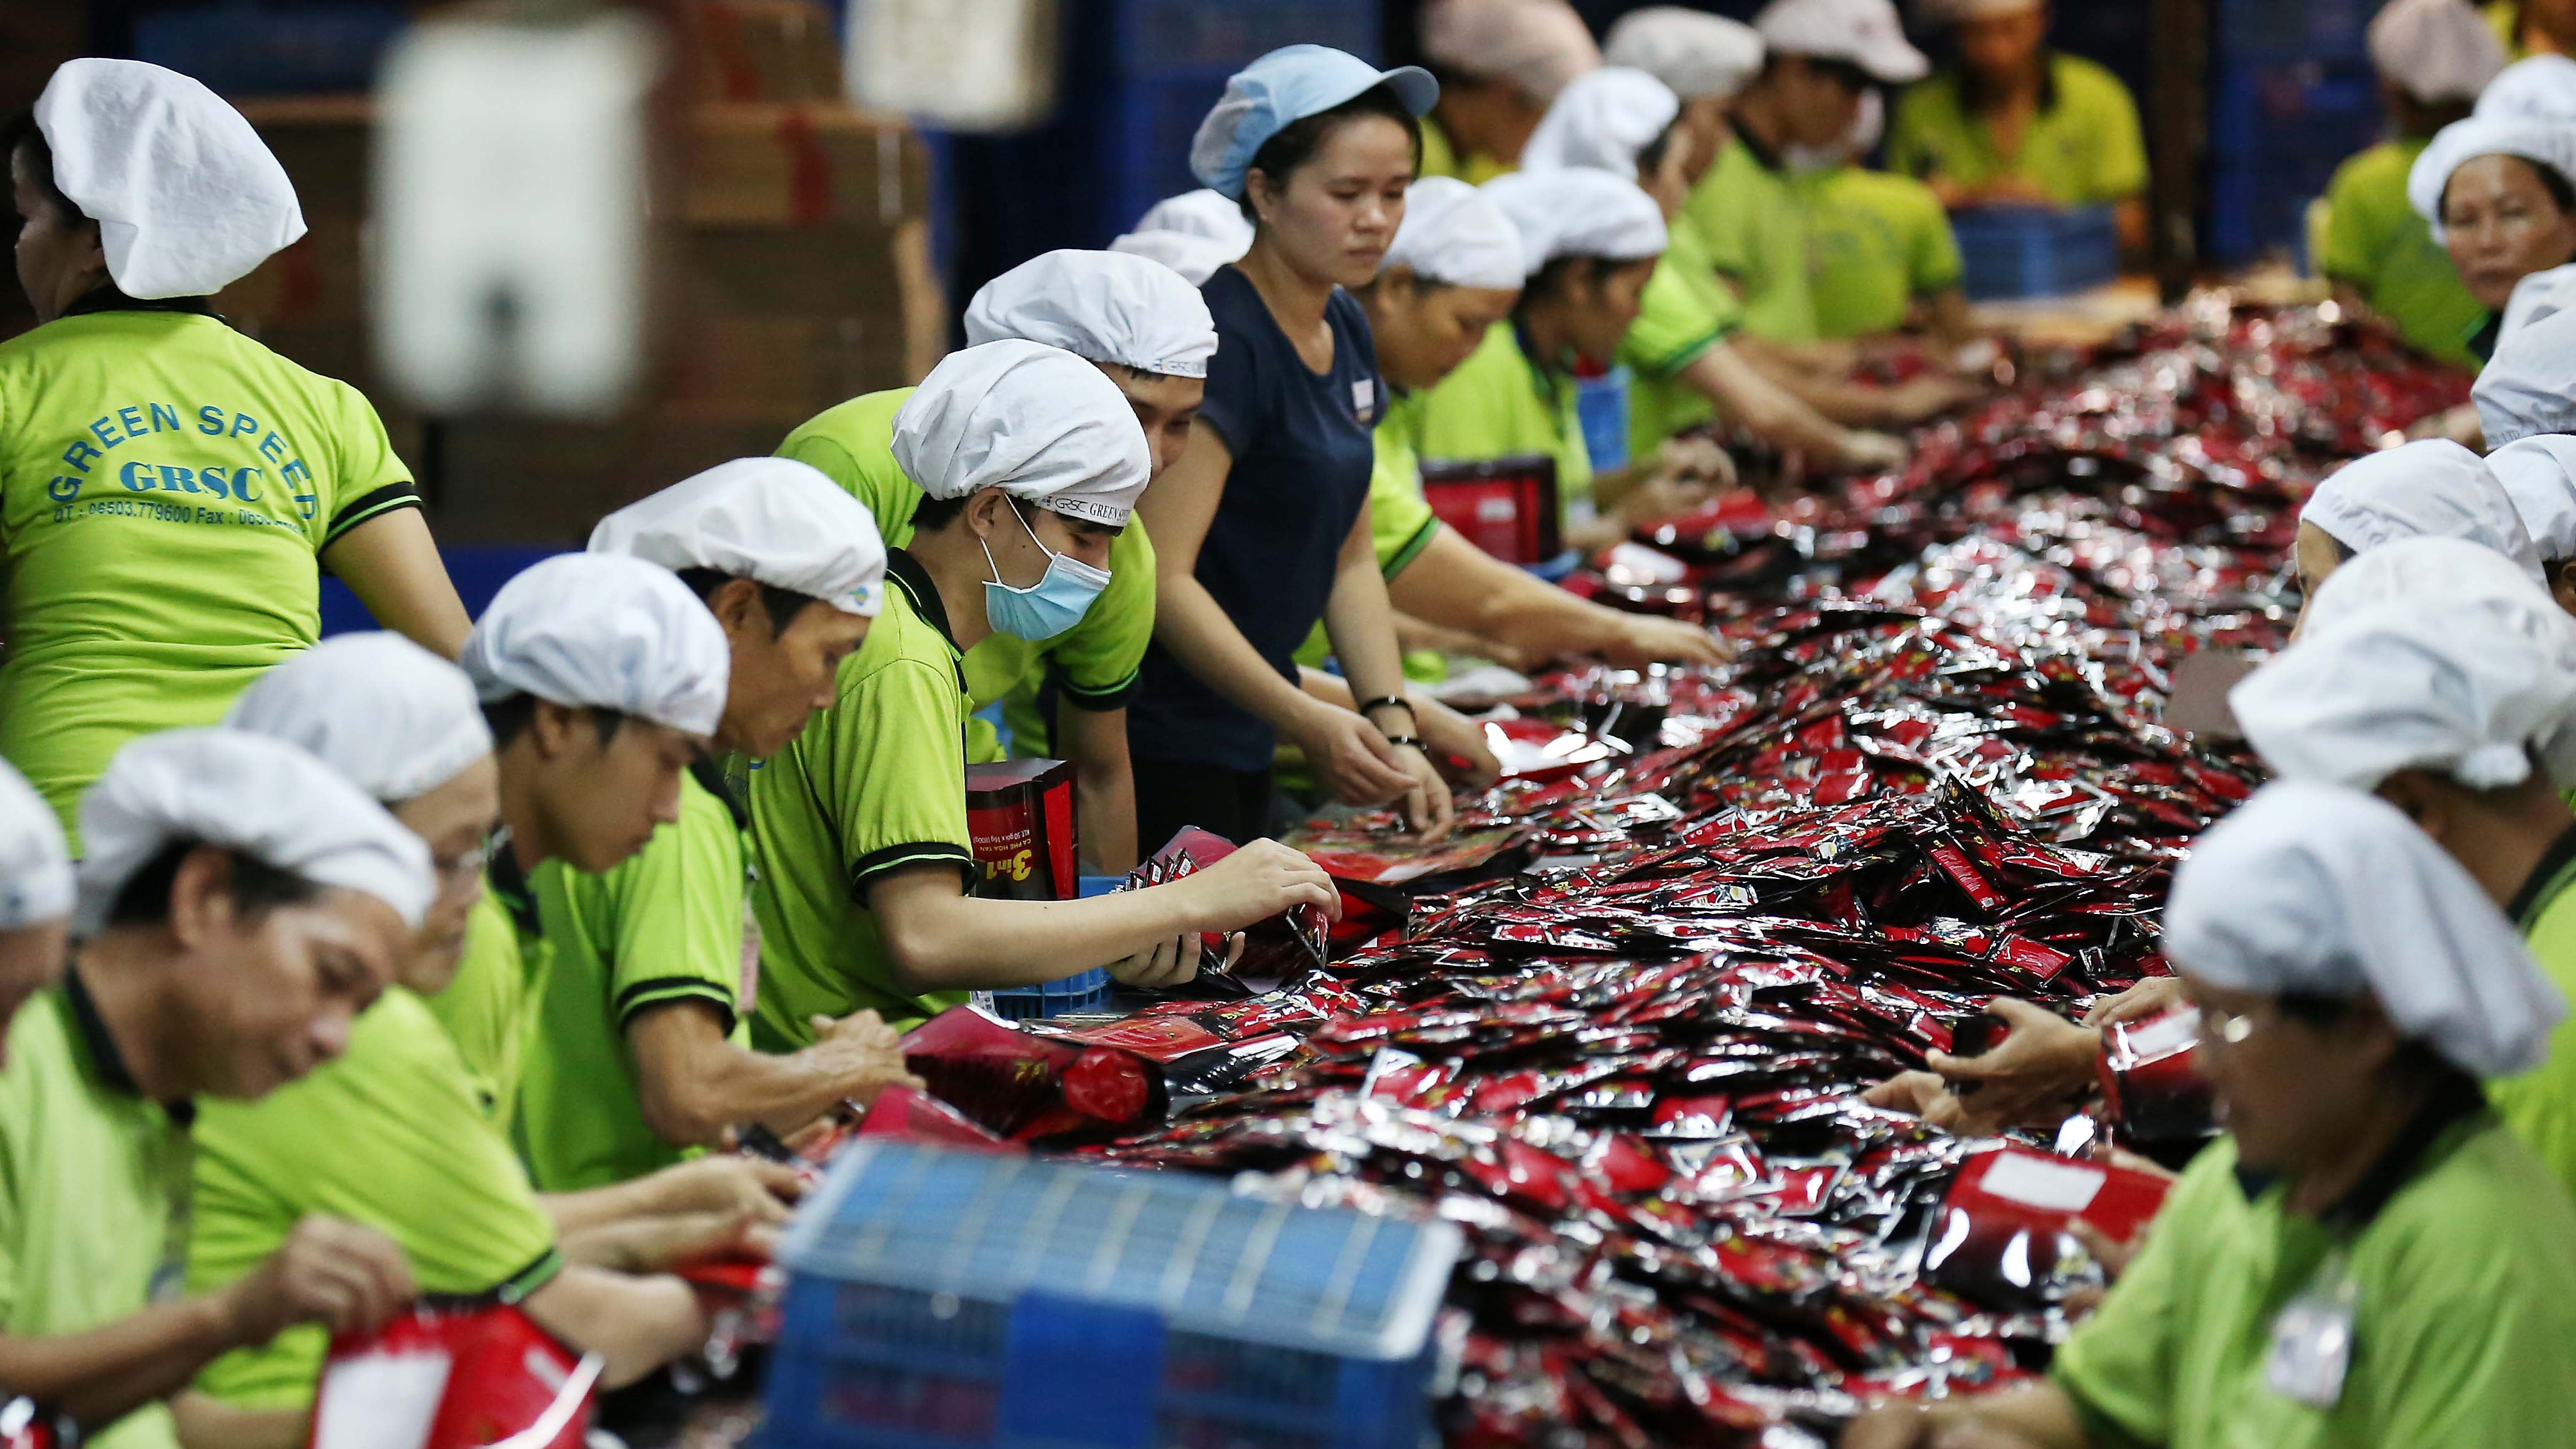 Vietnam emerges as key beneficiary of trade war - Nikkei Asian Review